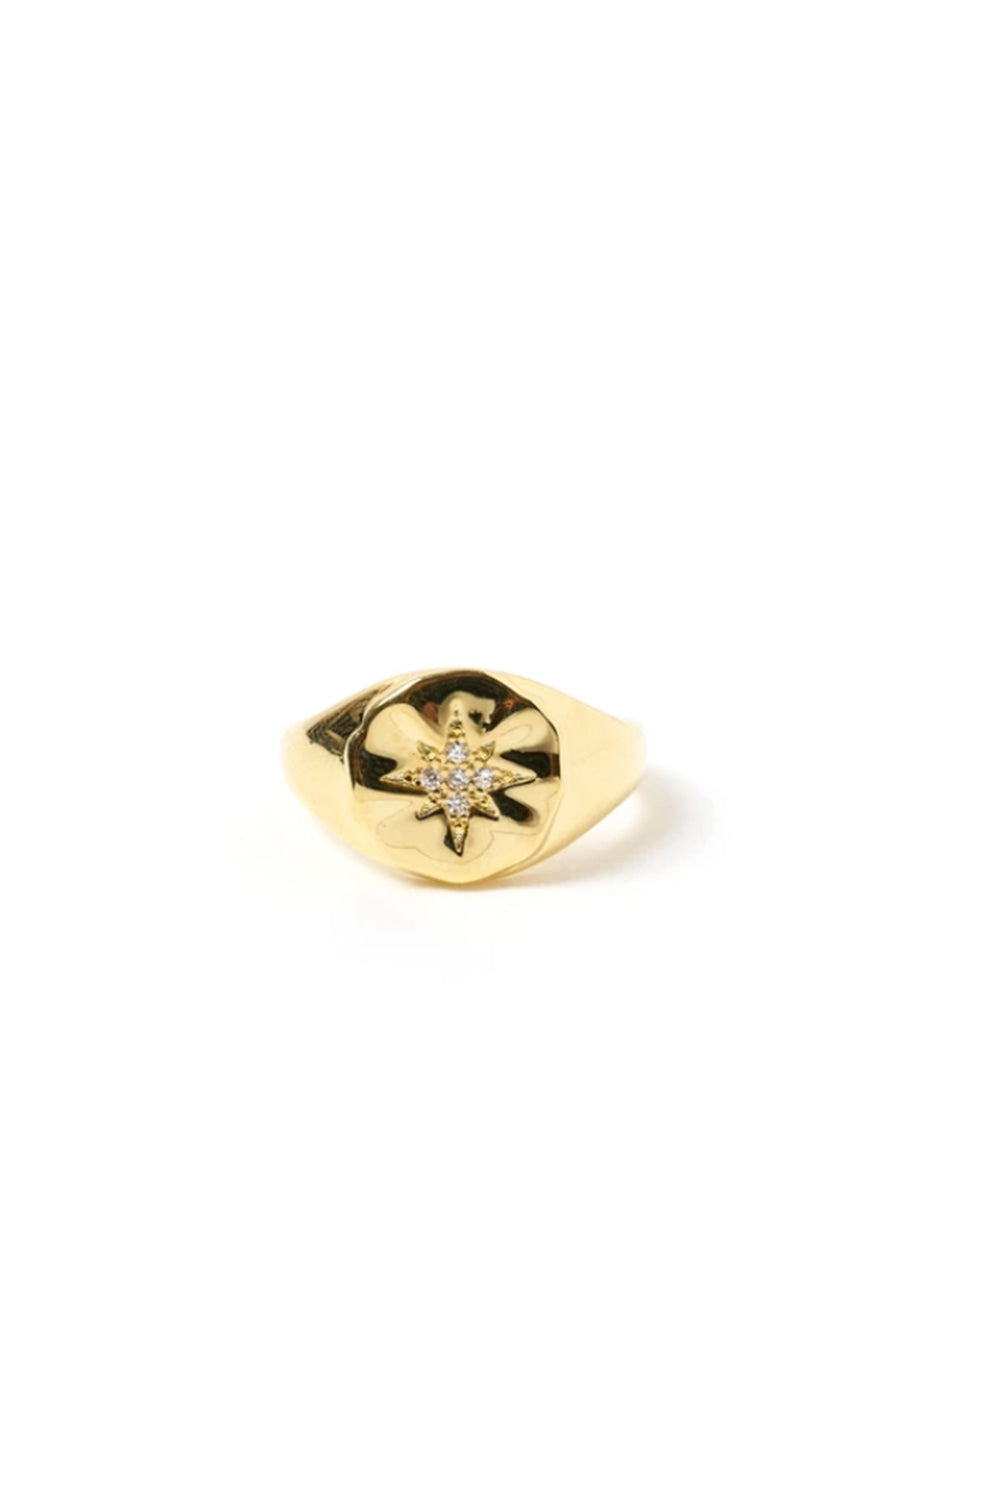 ARMS OF EVE - Estrella Gold & Zircon Signet Ring - Australian Fashion and Accessories Boutique - Faid Store